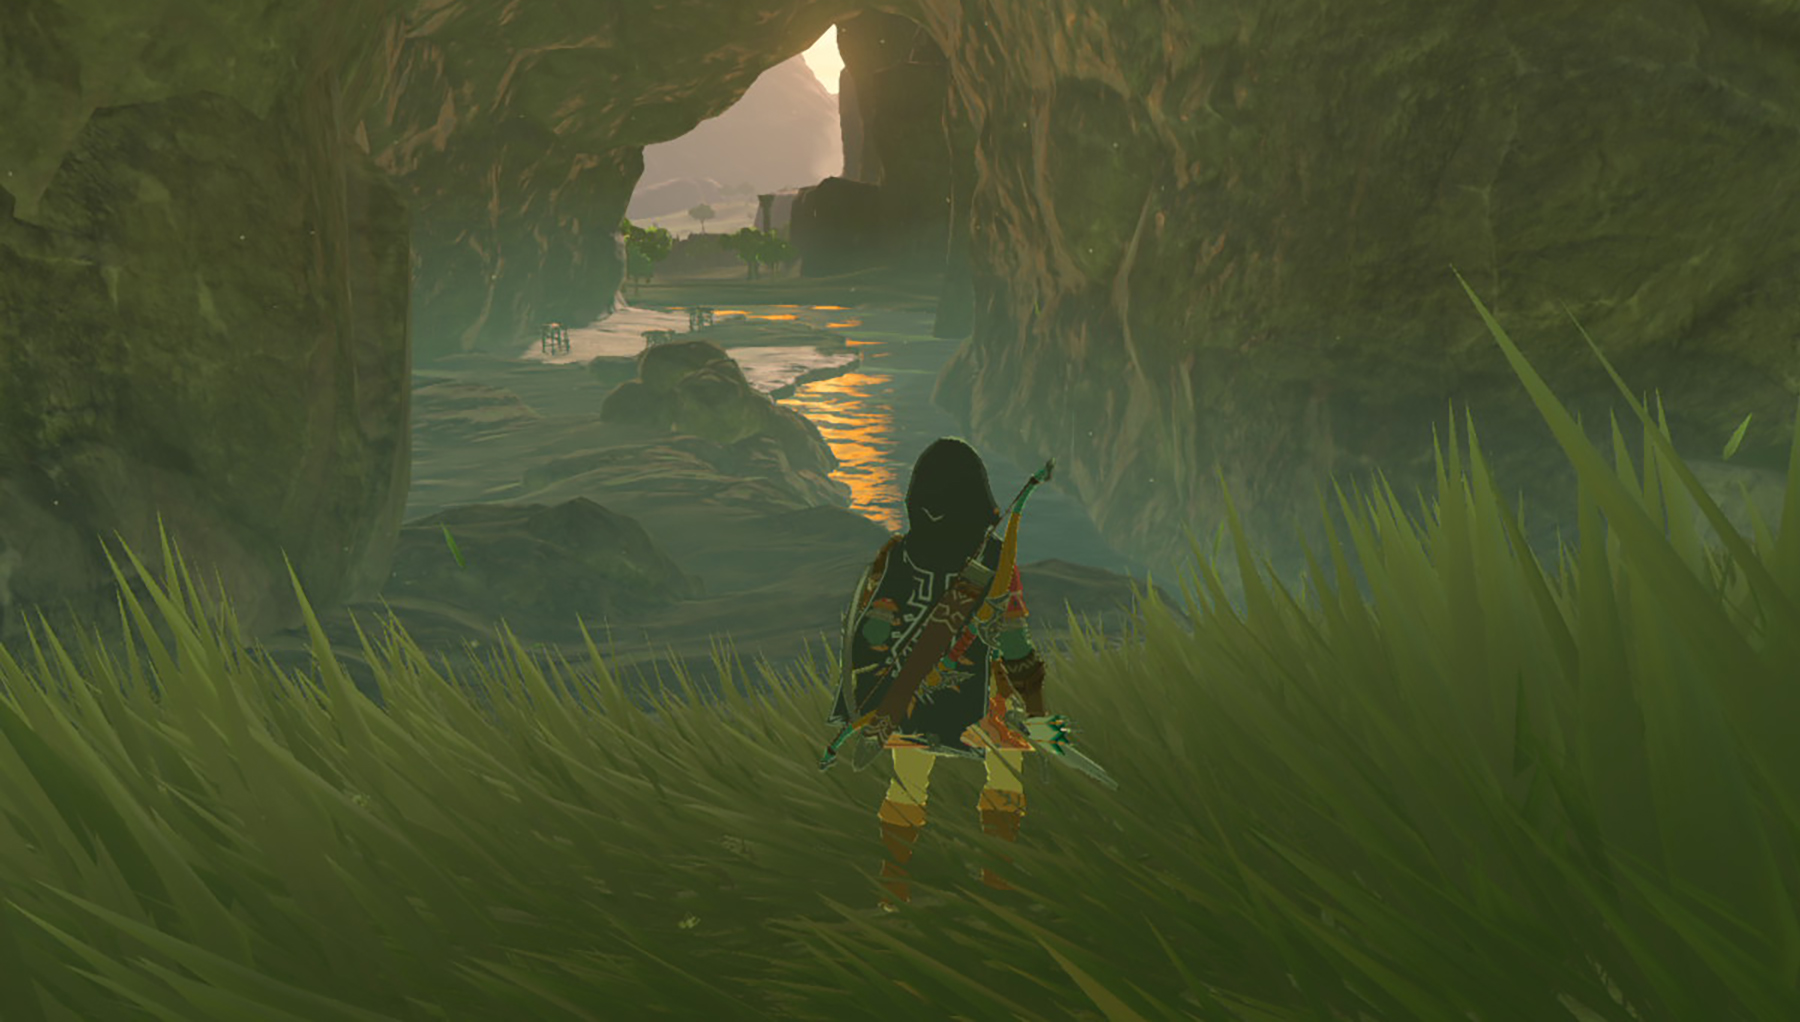 Esto es lo que recibirás tras encontrar las 900 semillas de Kolog en Zelda: Breath of the Wild